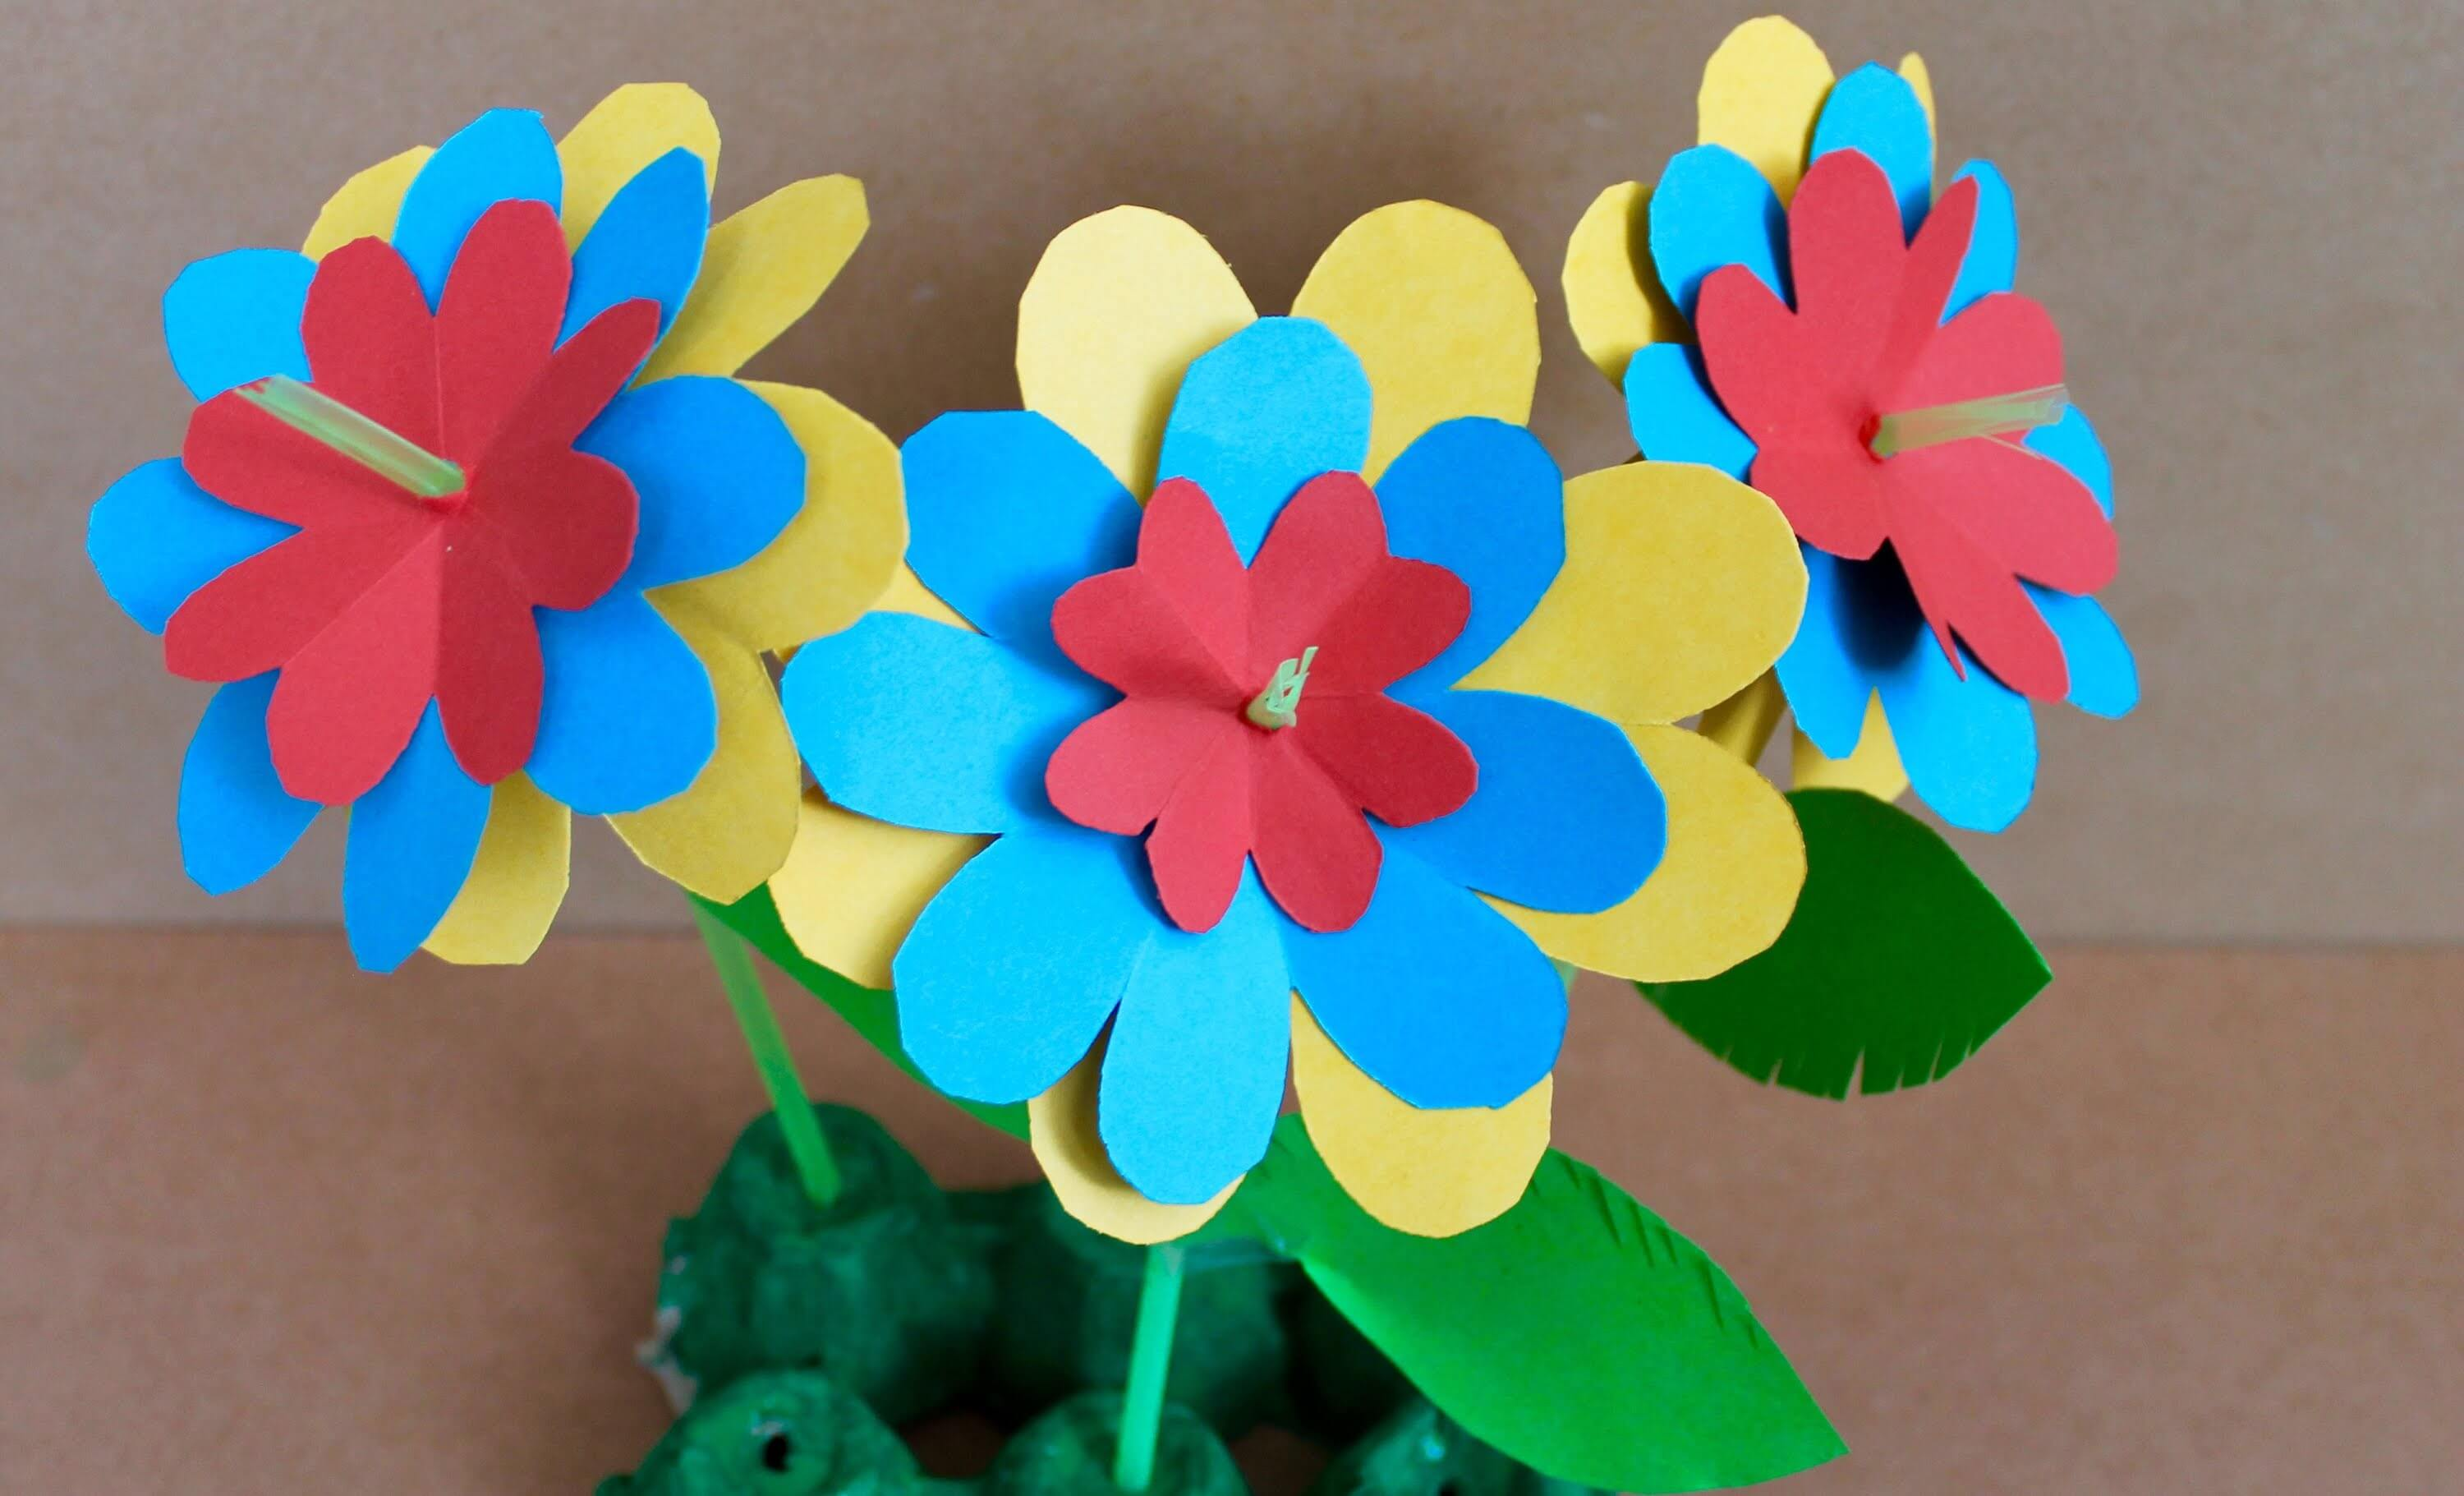 17 Simple Amp Most Funny Diy Paper Crafts For Kids